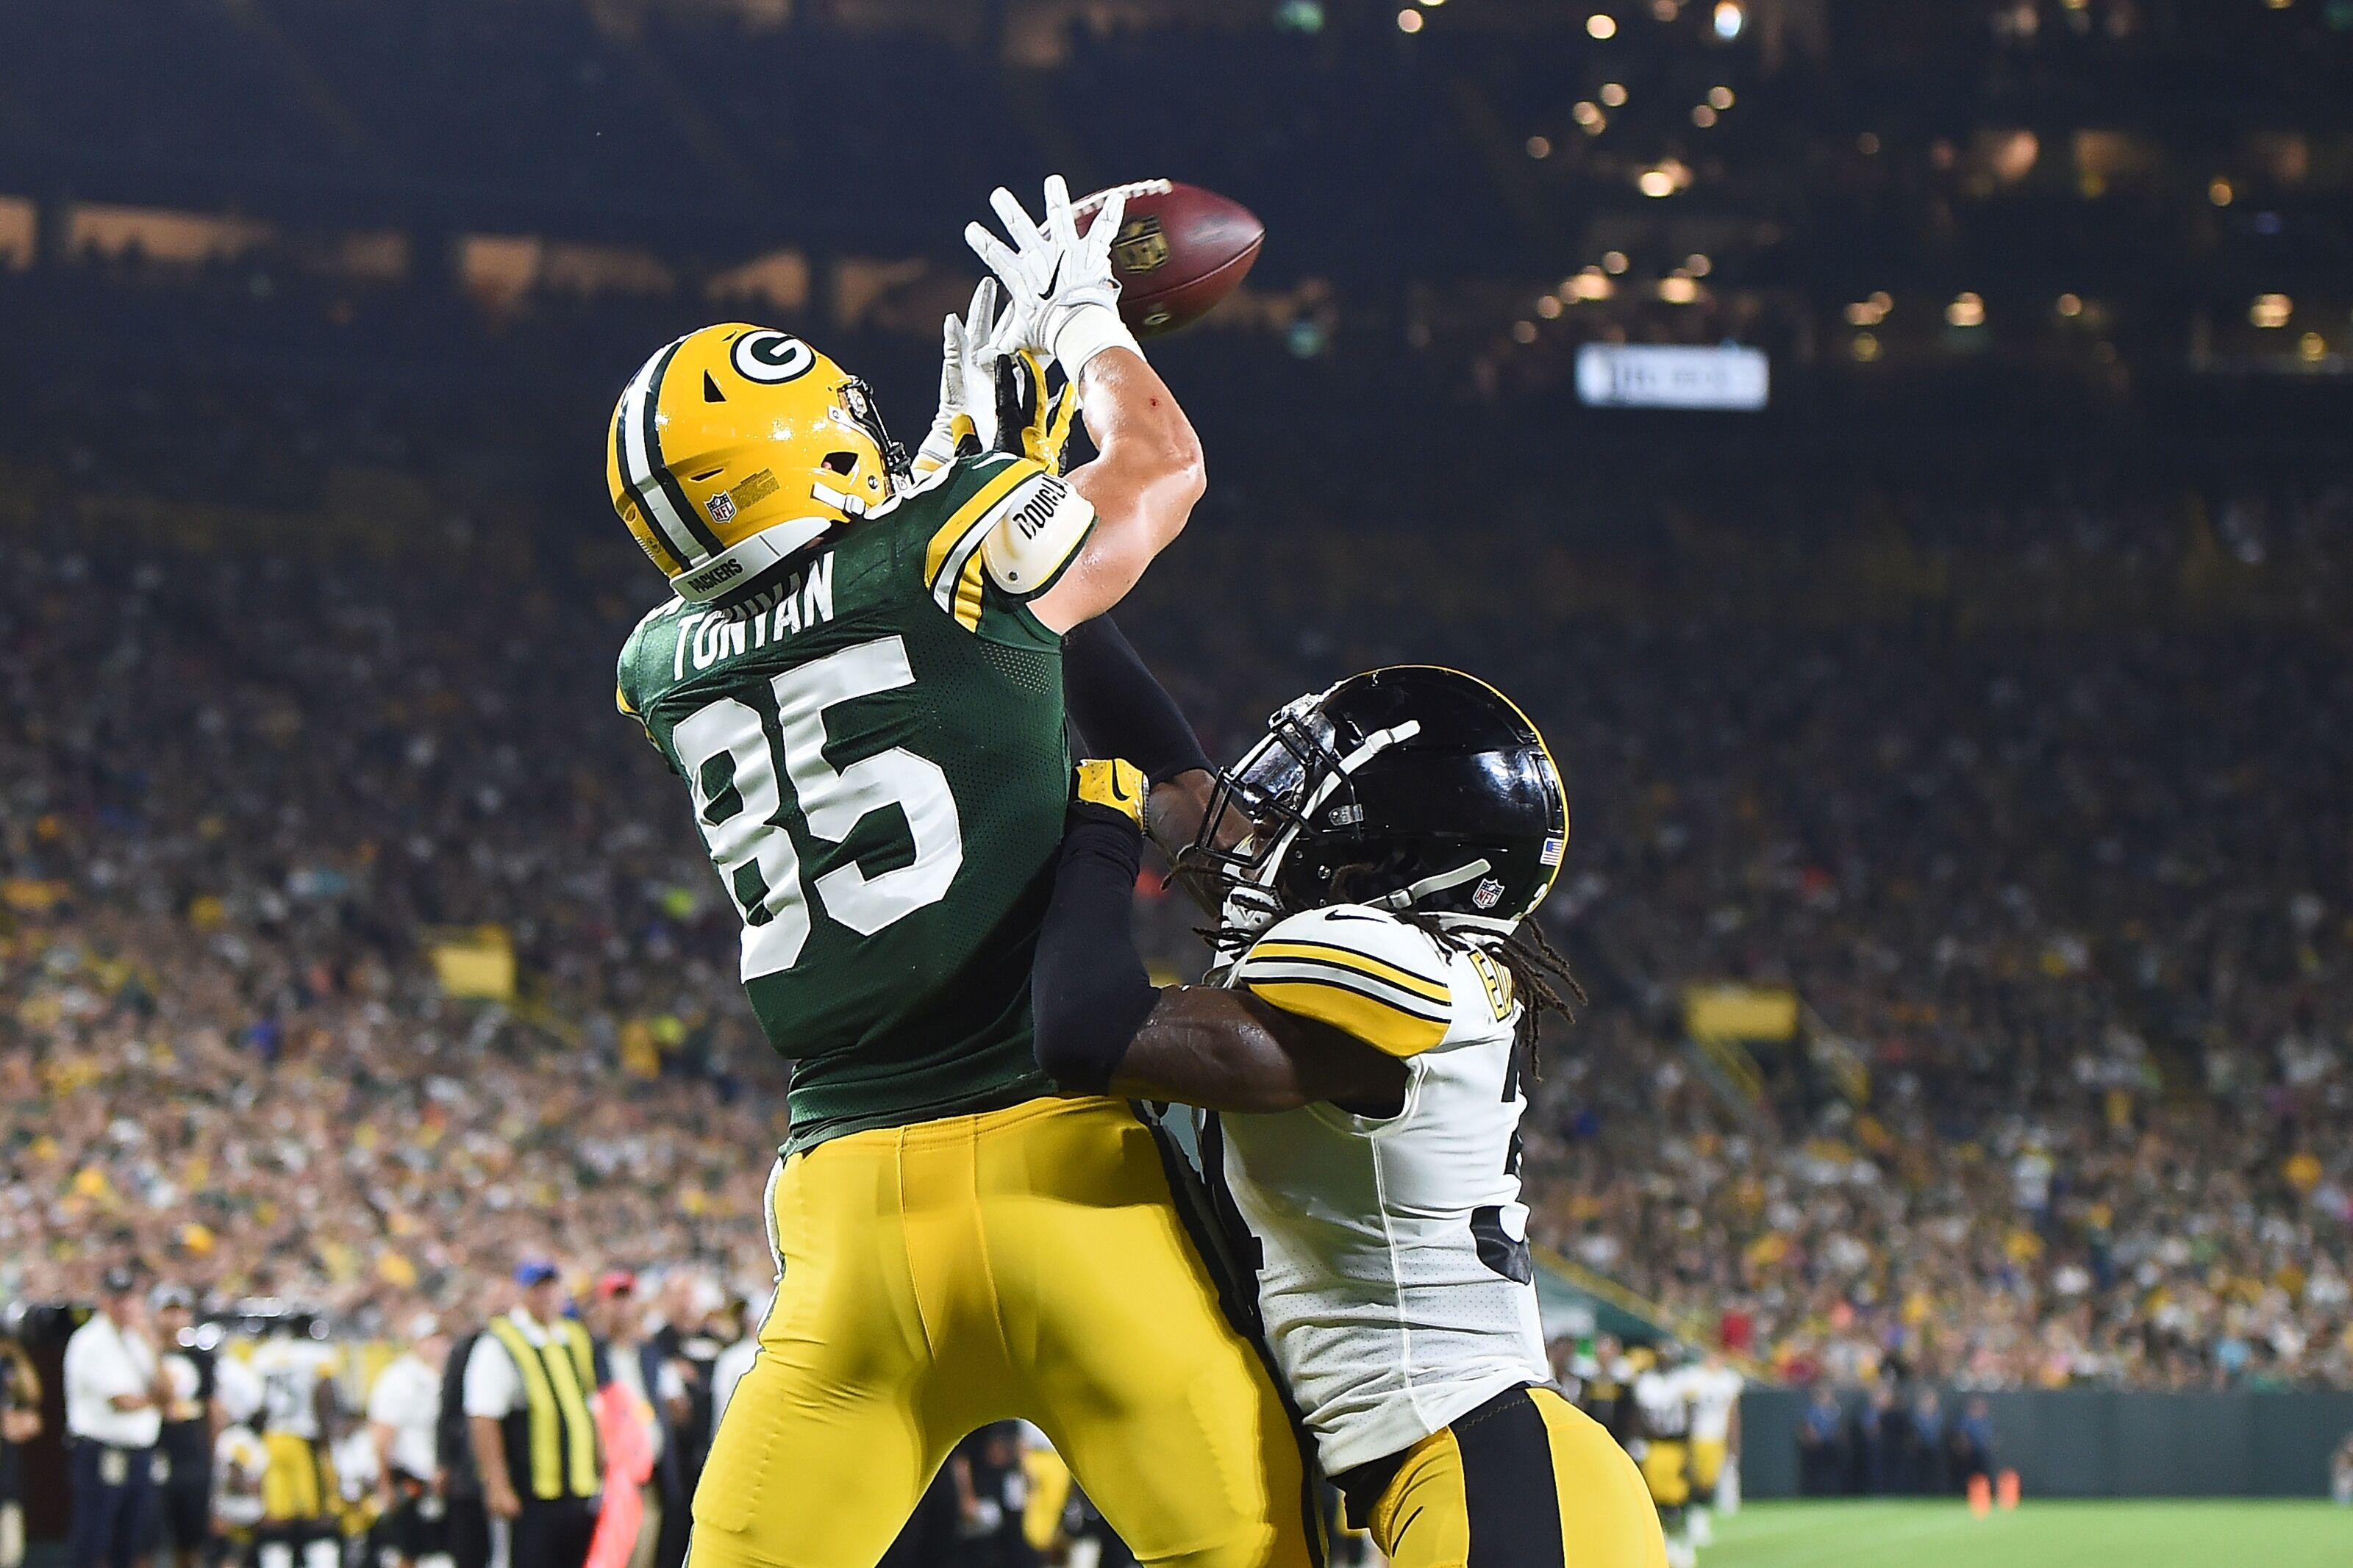 Packers: Robert Tonyan returns vs. 49ers in Week 12